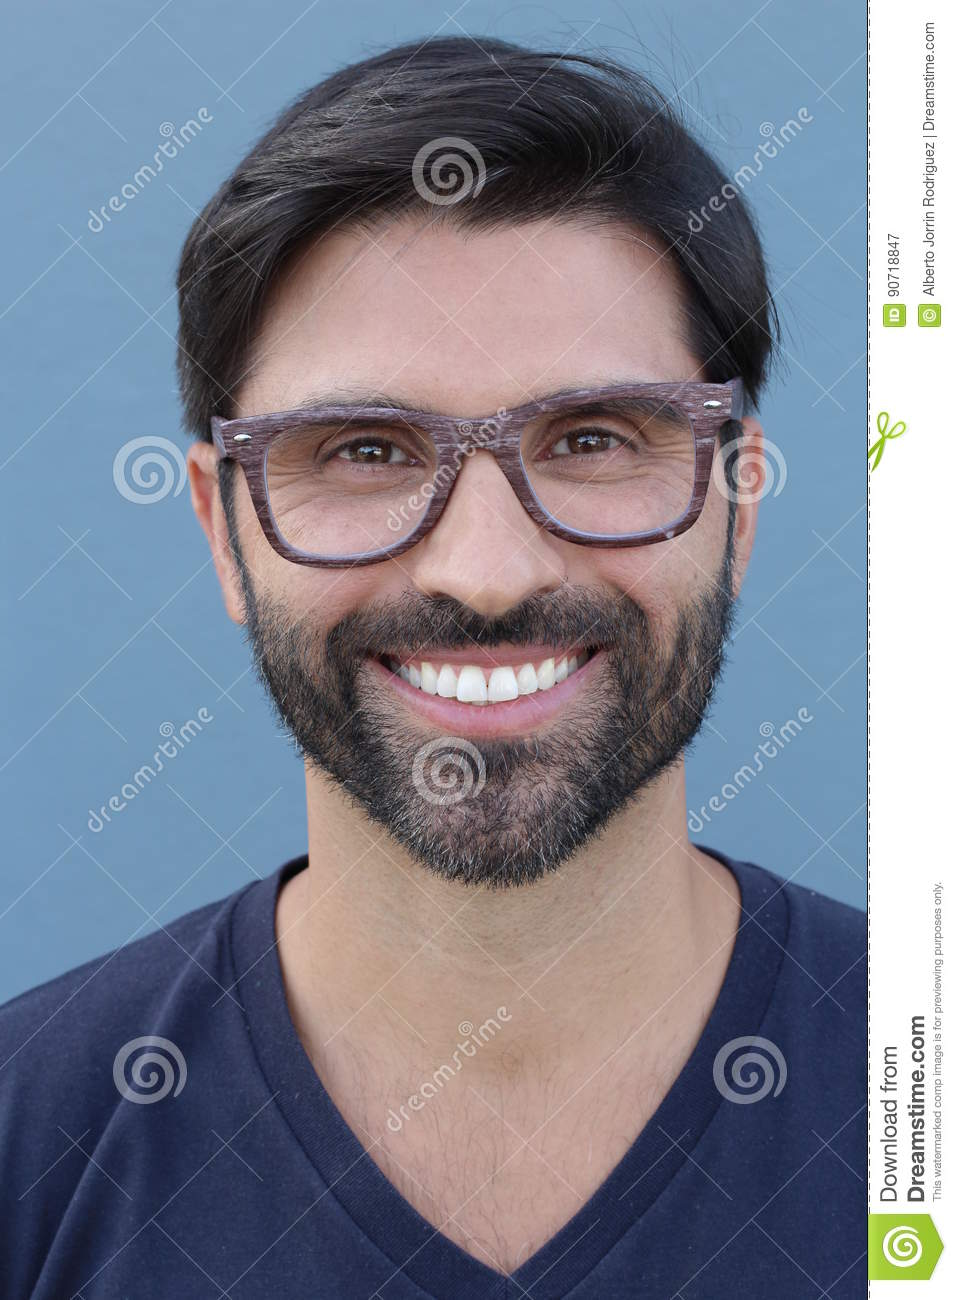 07f02245399c Bearded Attractive Male With Stylish Eyeglasses Stock Image - Image ...